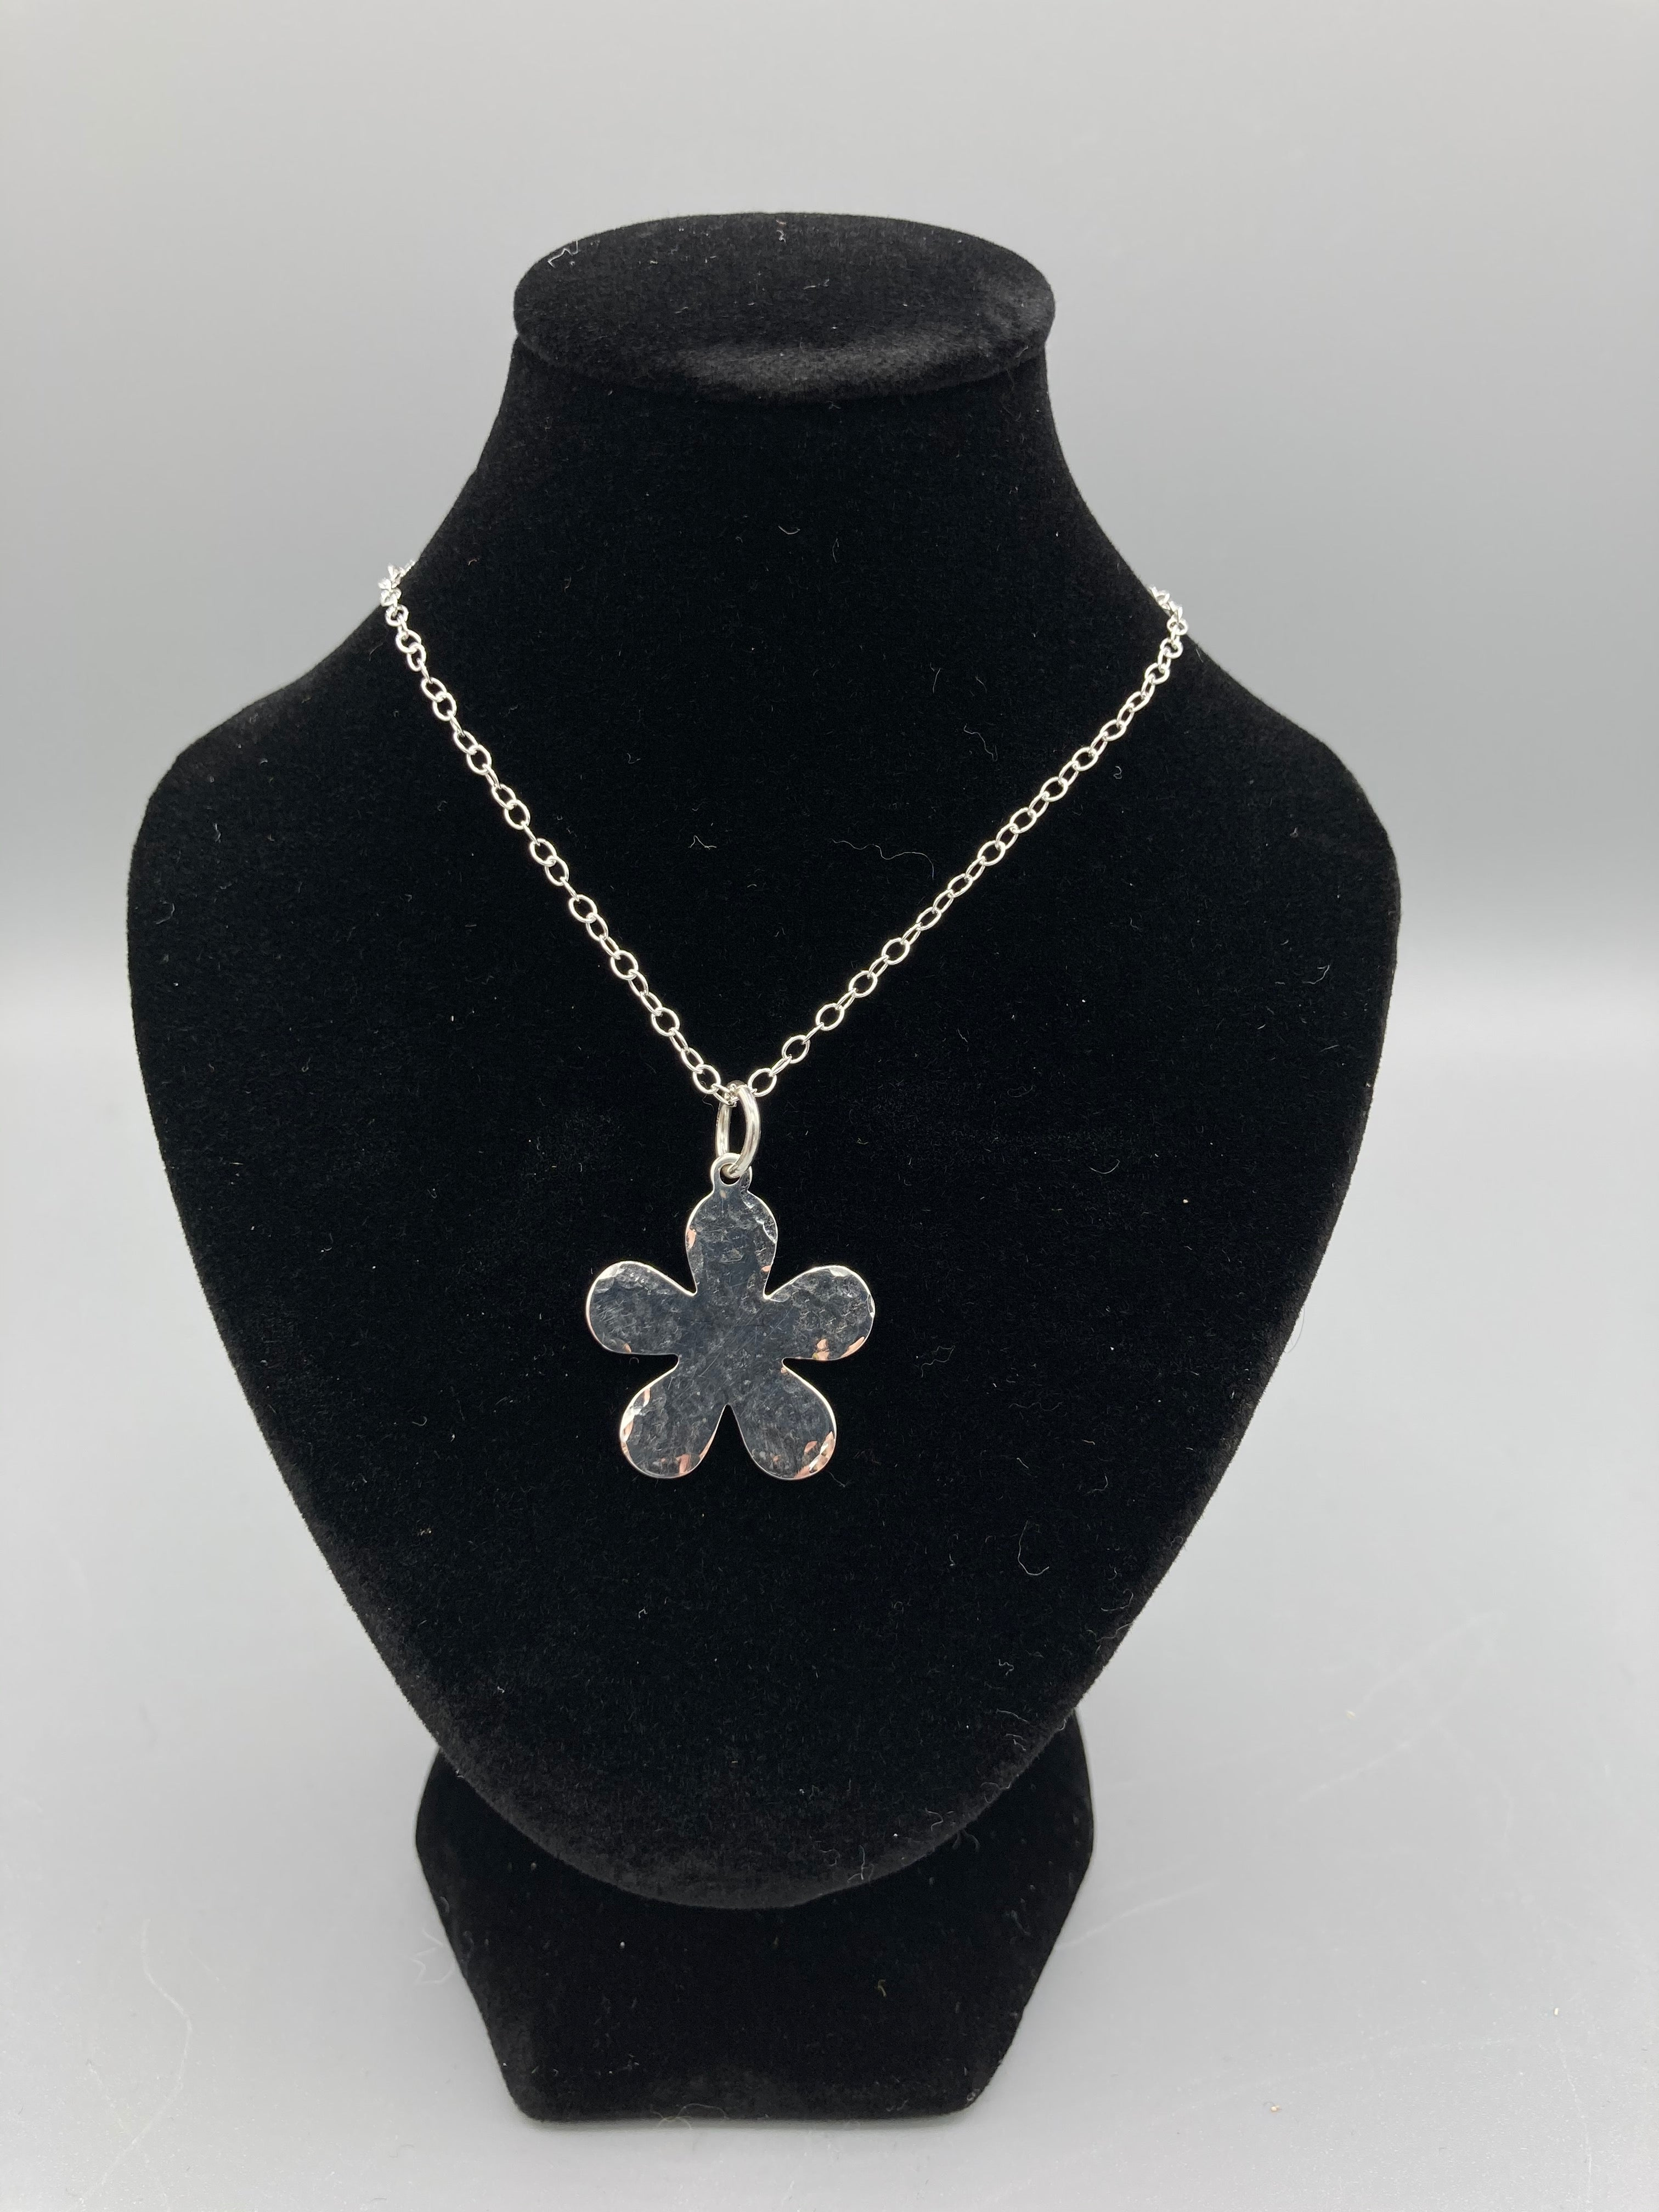 Sterling Silver Pendant. Single flower pendant 20mm wide hammered finish